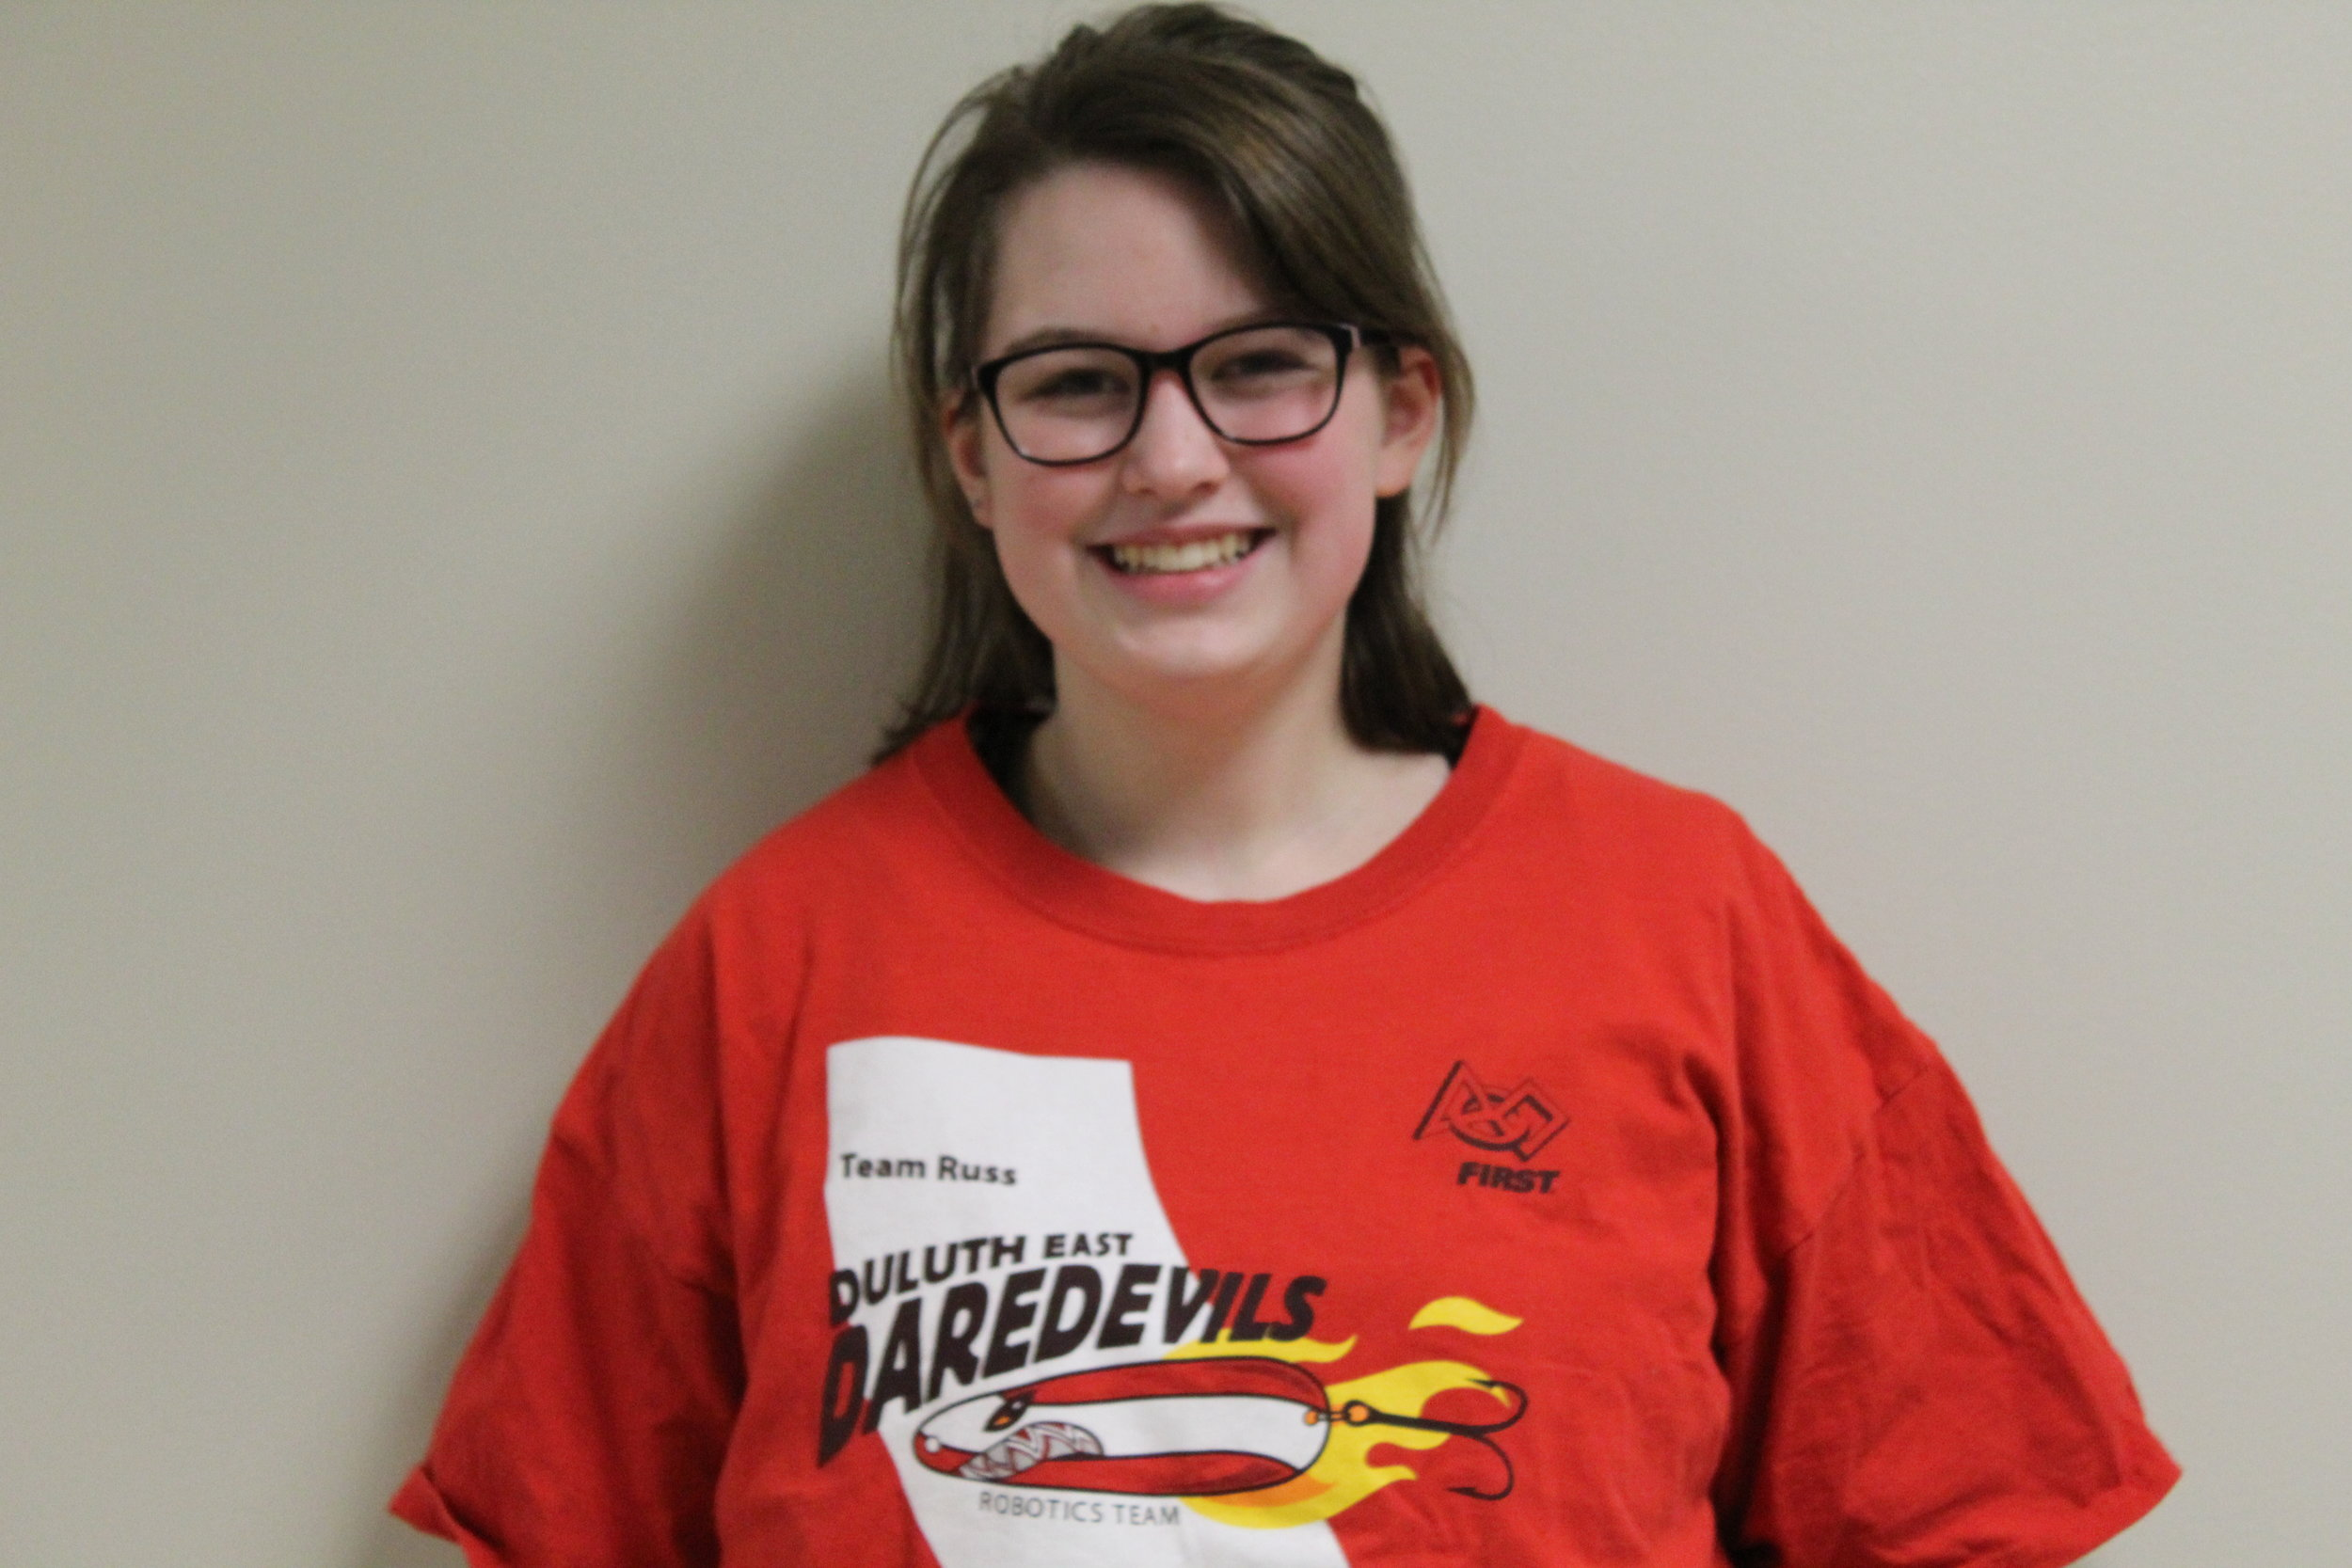 captain: Annalise B. - Annalise is a sophomore at Duluth East, and this is her first year on the Daredevils. She heard about the team through friends and was immediately interested. In her free time she enjoys doing more robotics.